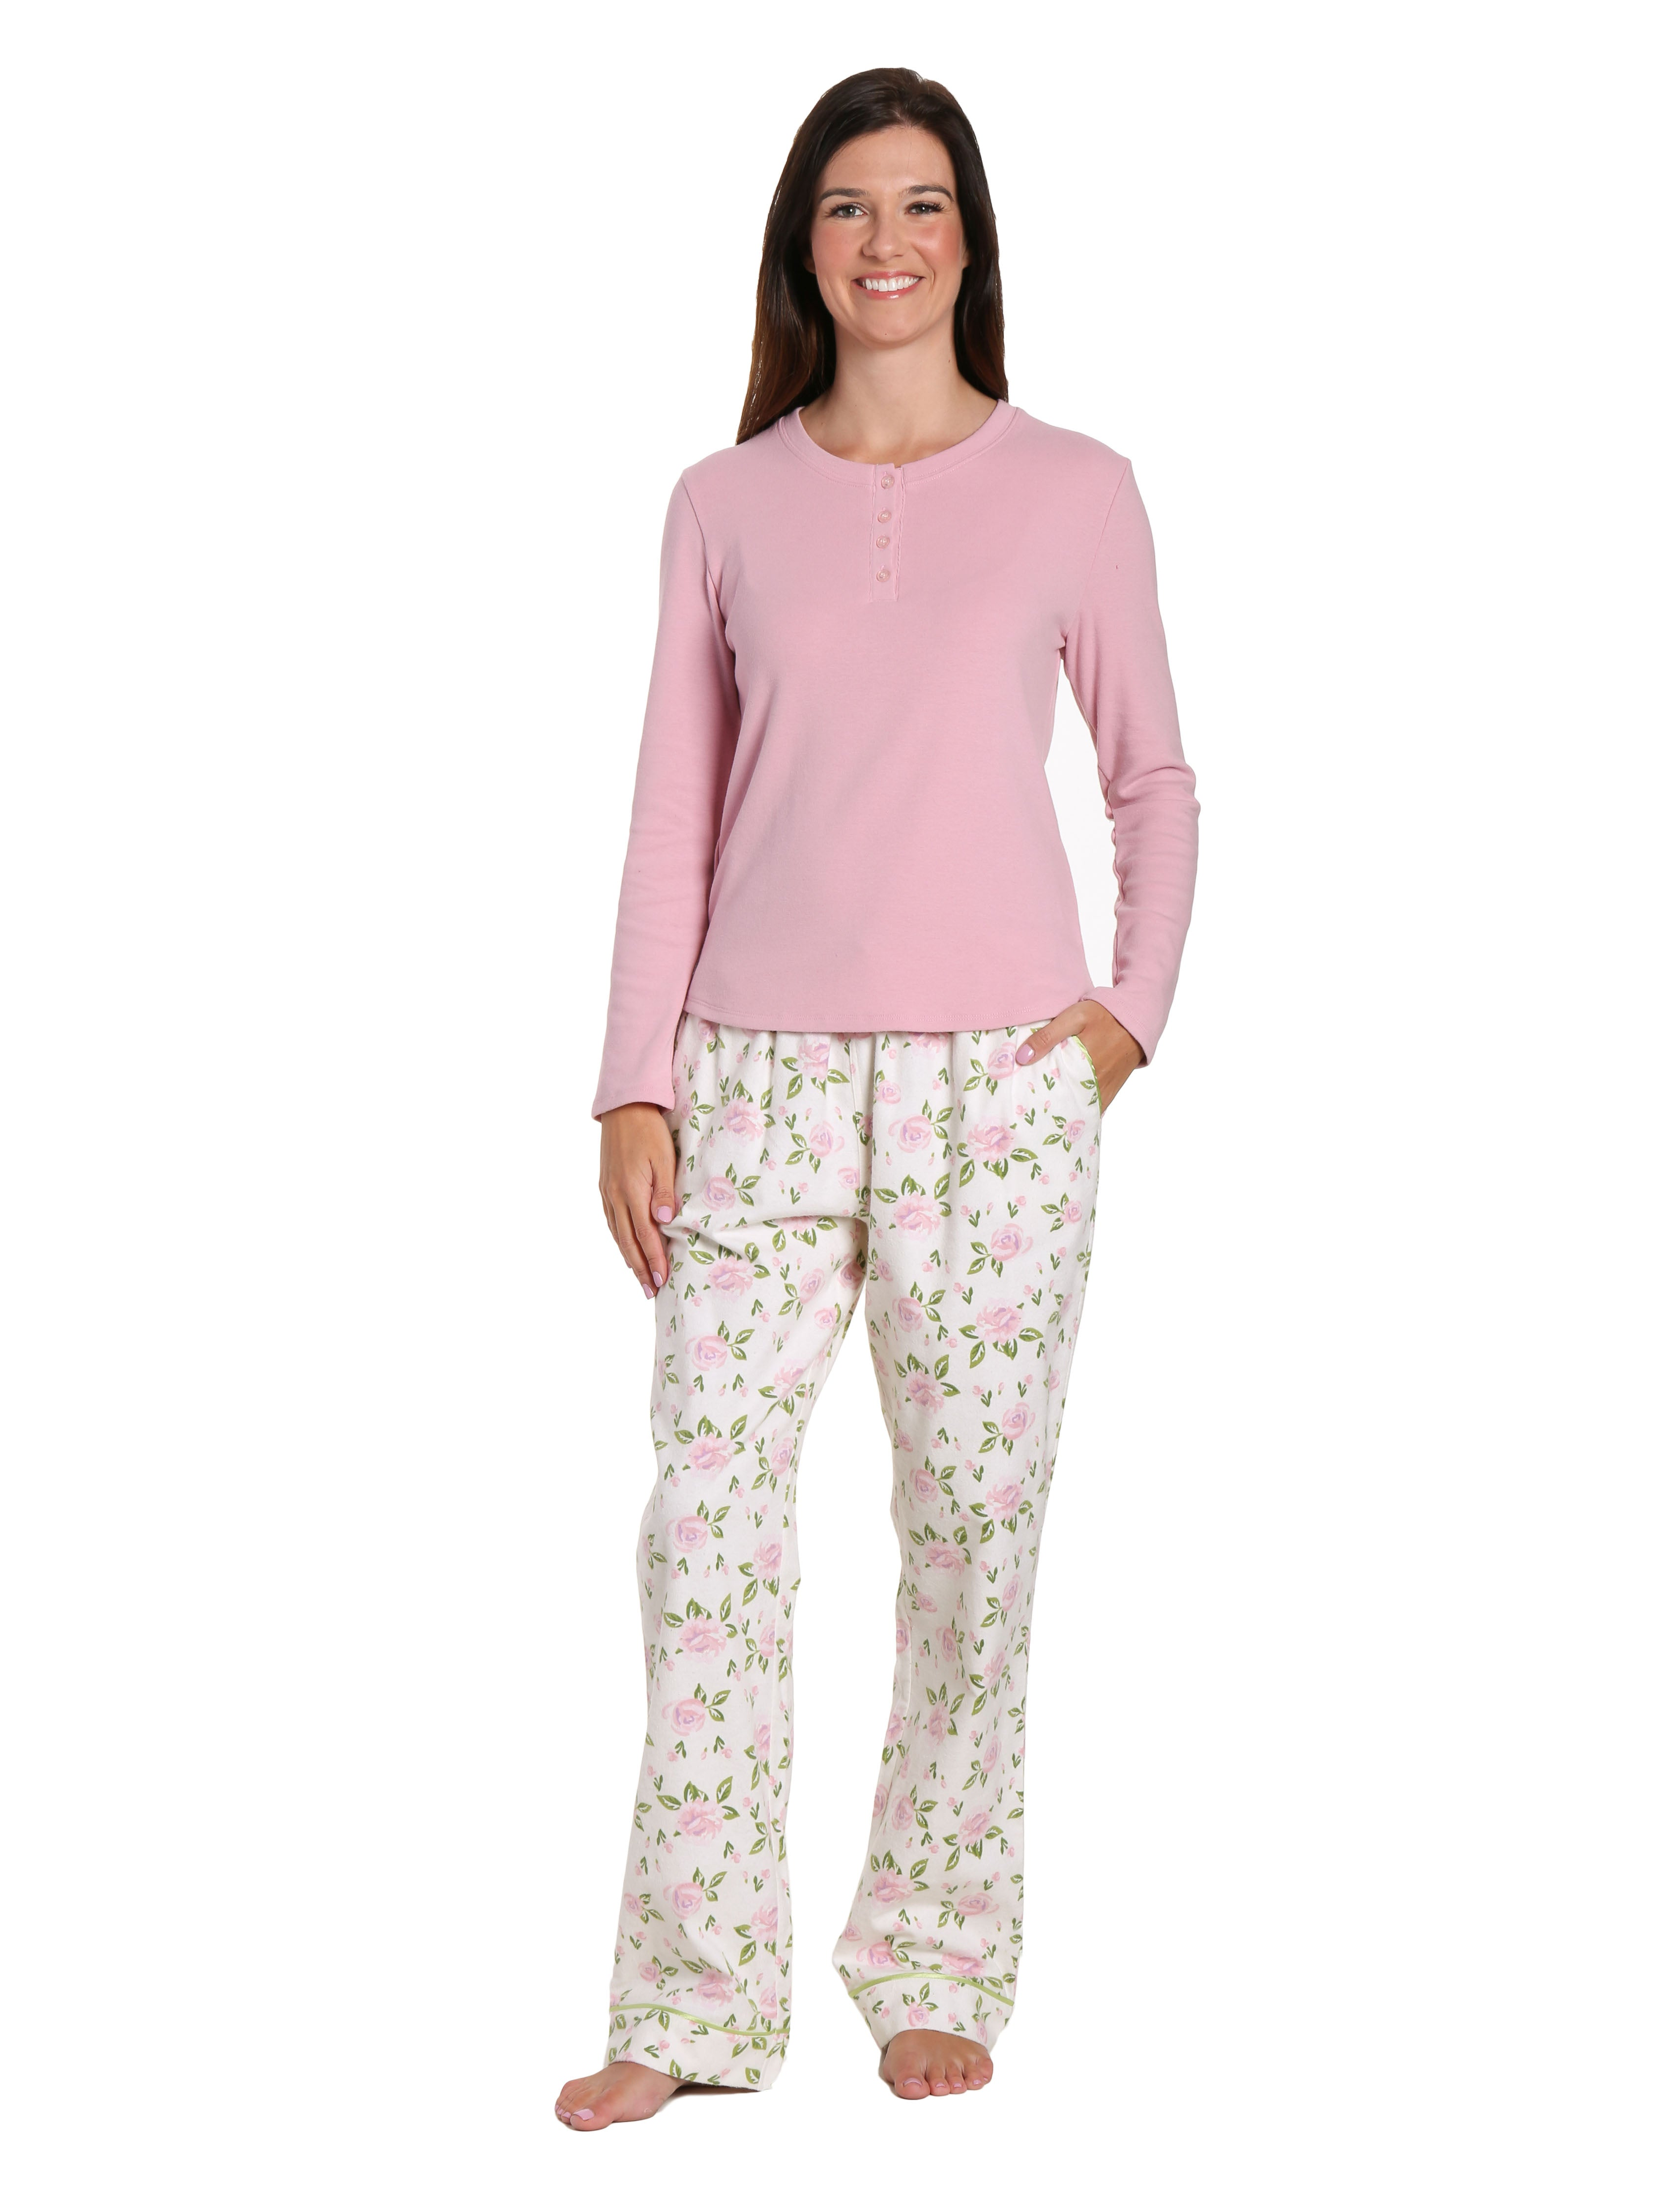 Womens Premium Cotton Flannel Loungewear Set - Gardenia Cream-Pink